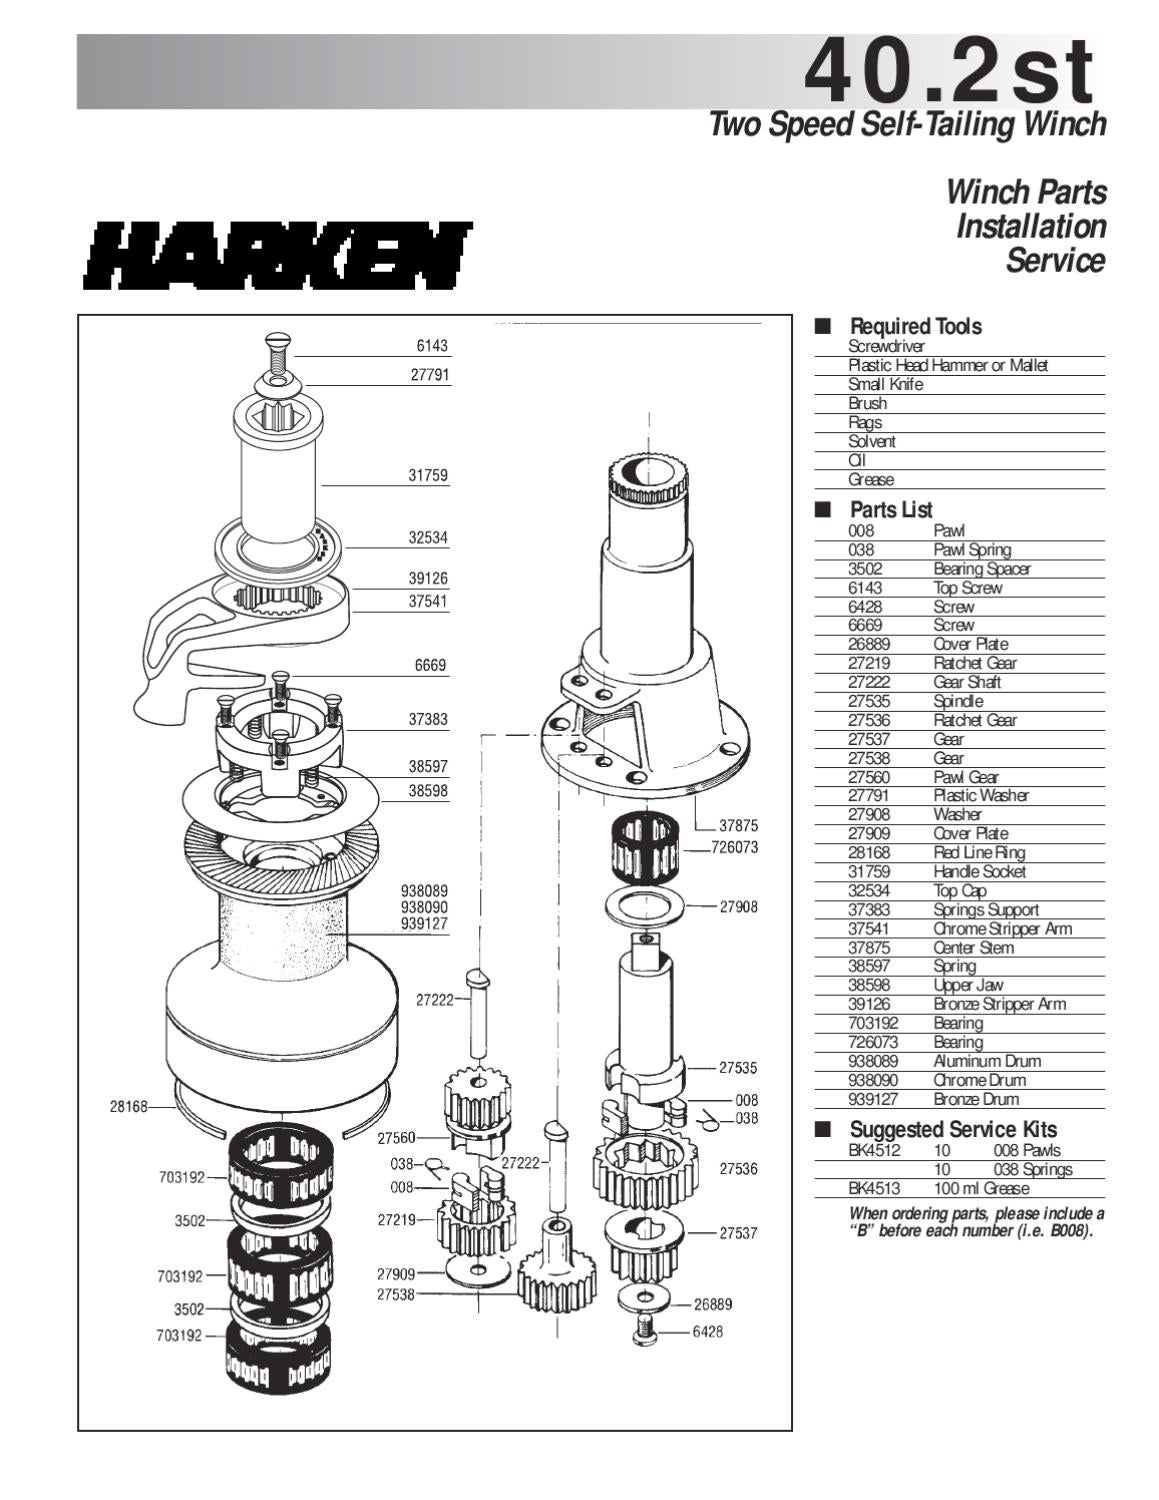 HARKEN Winch Service Parts and Grease Winch Pawl for All winches ...